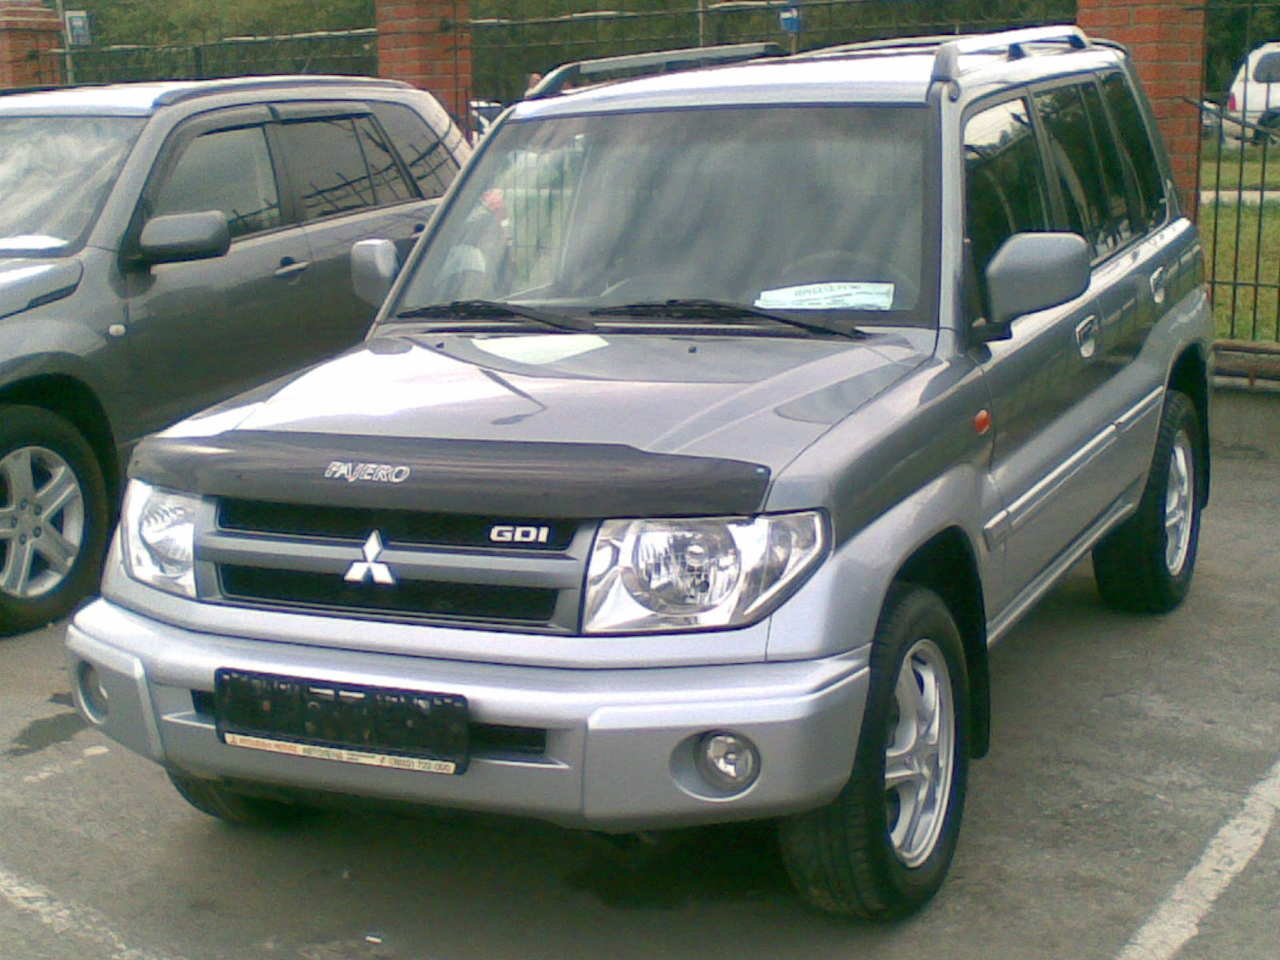 2004 mitsubishi pajero pinin photos 2 0 gasoline automatic for sale. Black Bedroom Furniture Sets. Home Design Ideas